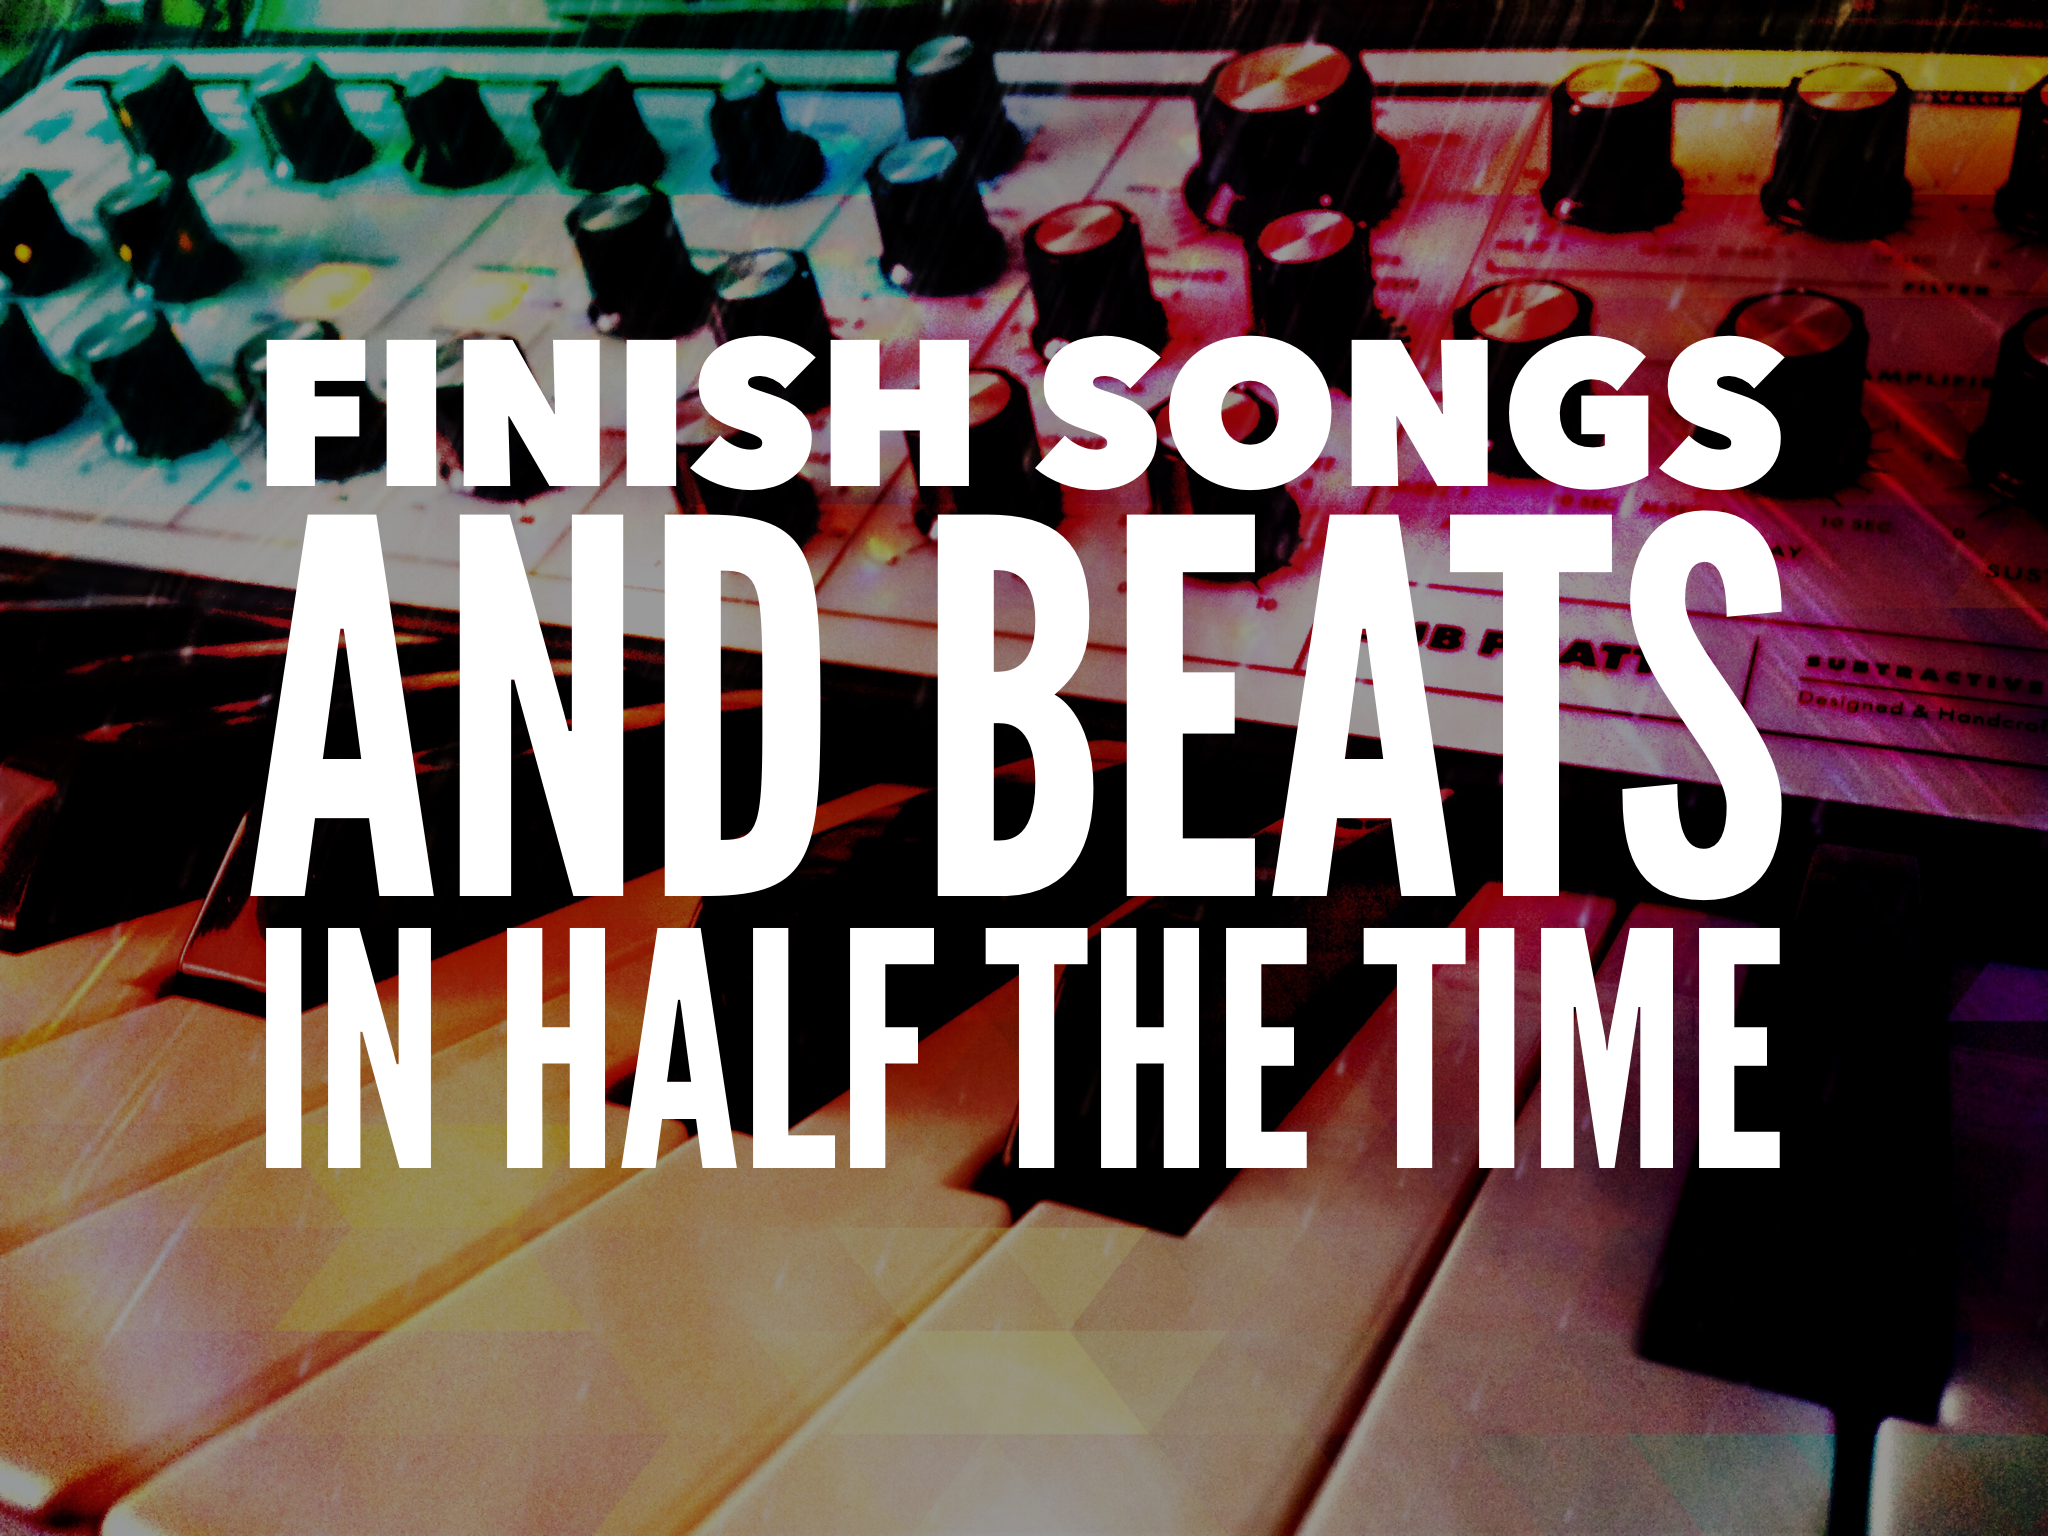 How to finish songs and beats in half the time - superherosamples